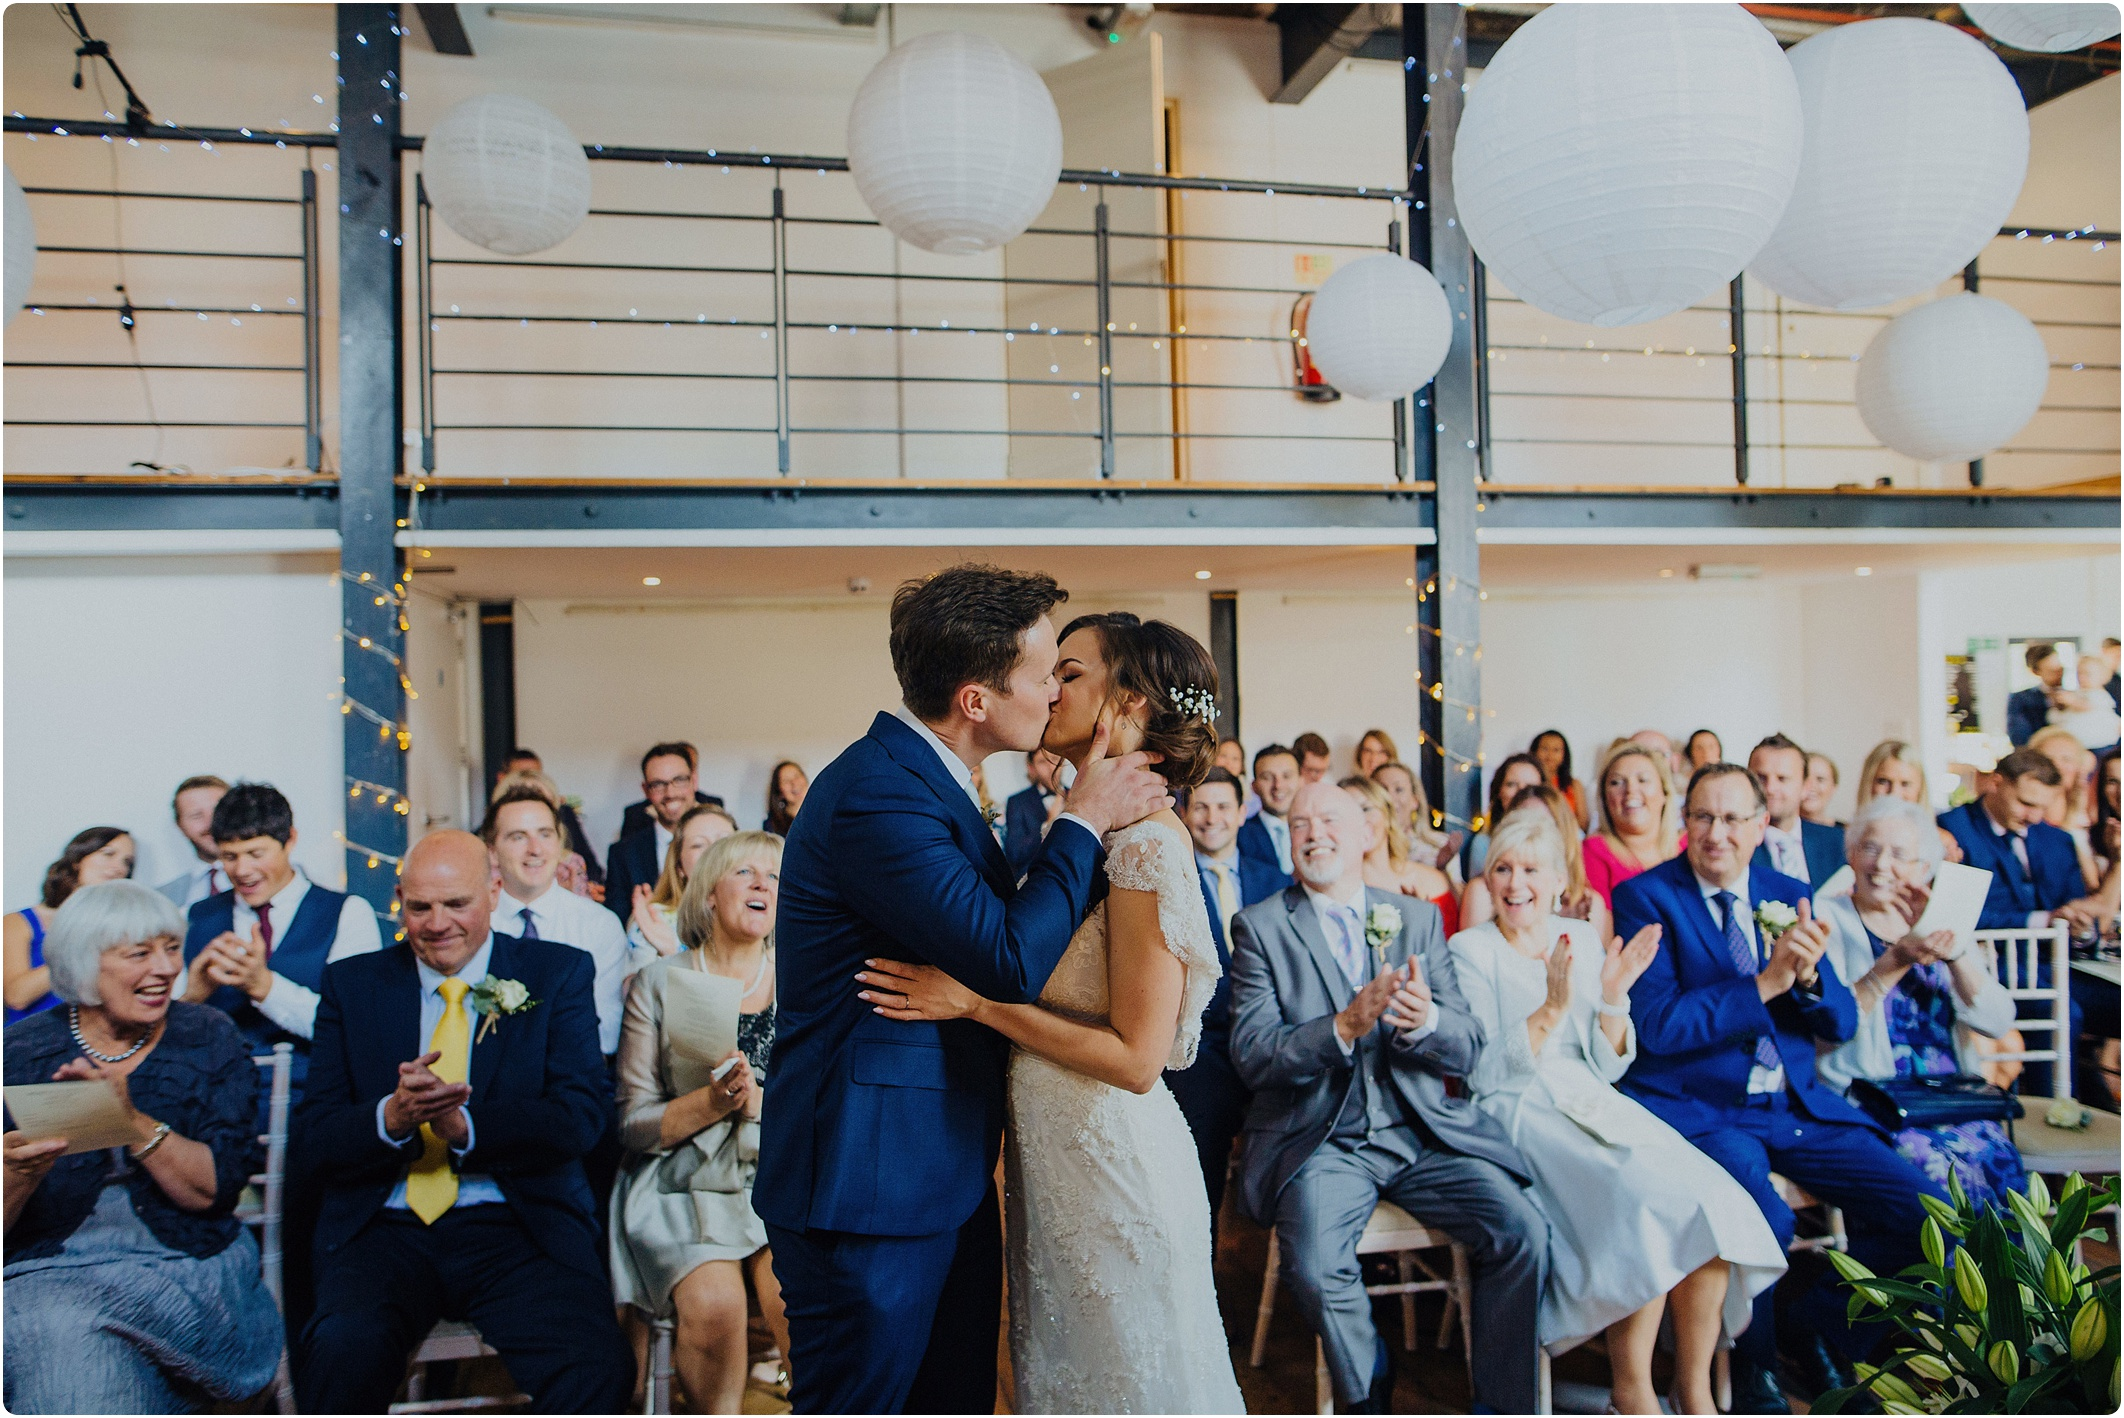 The first kiss at The Paintworks Wedding